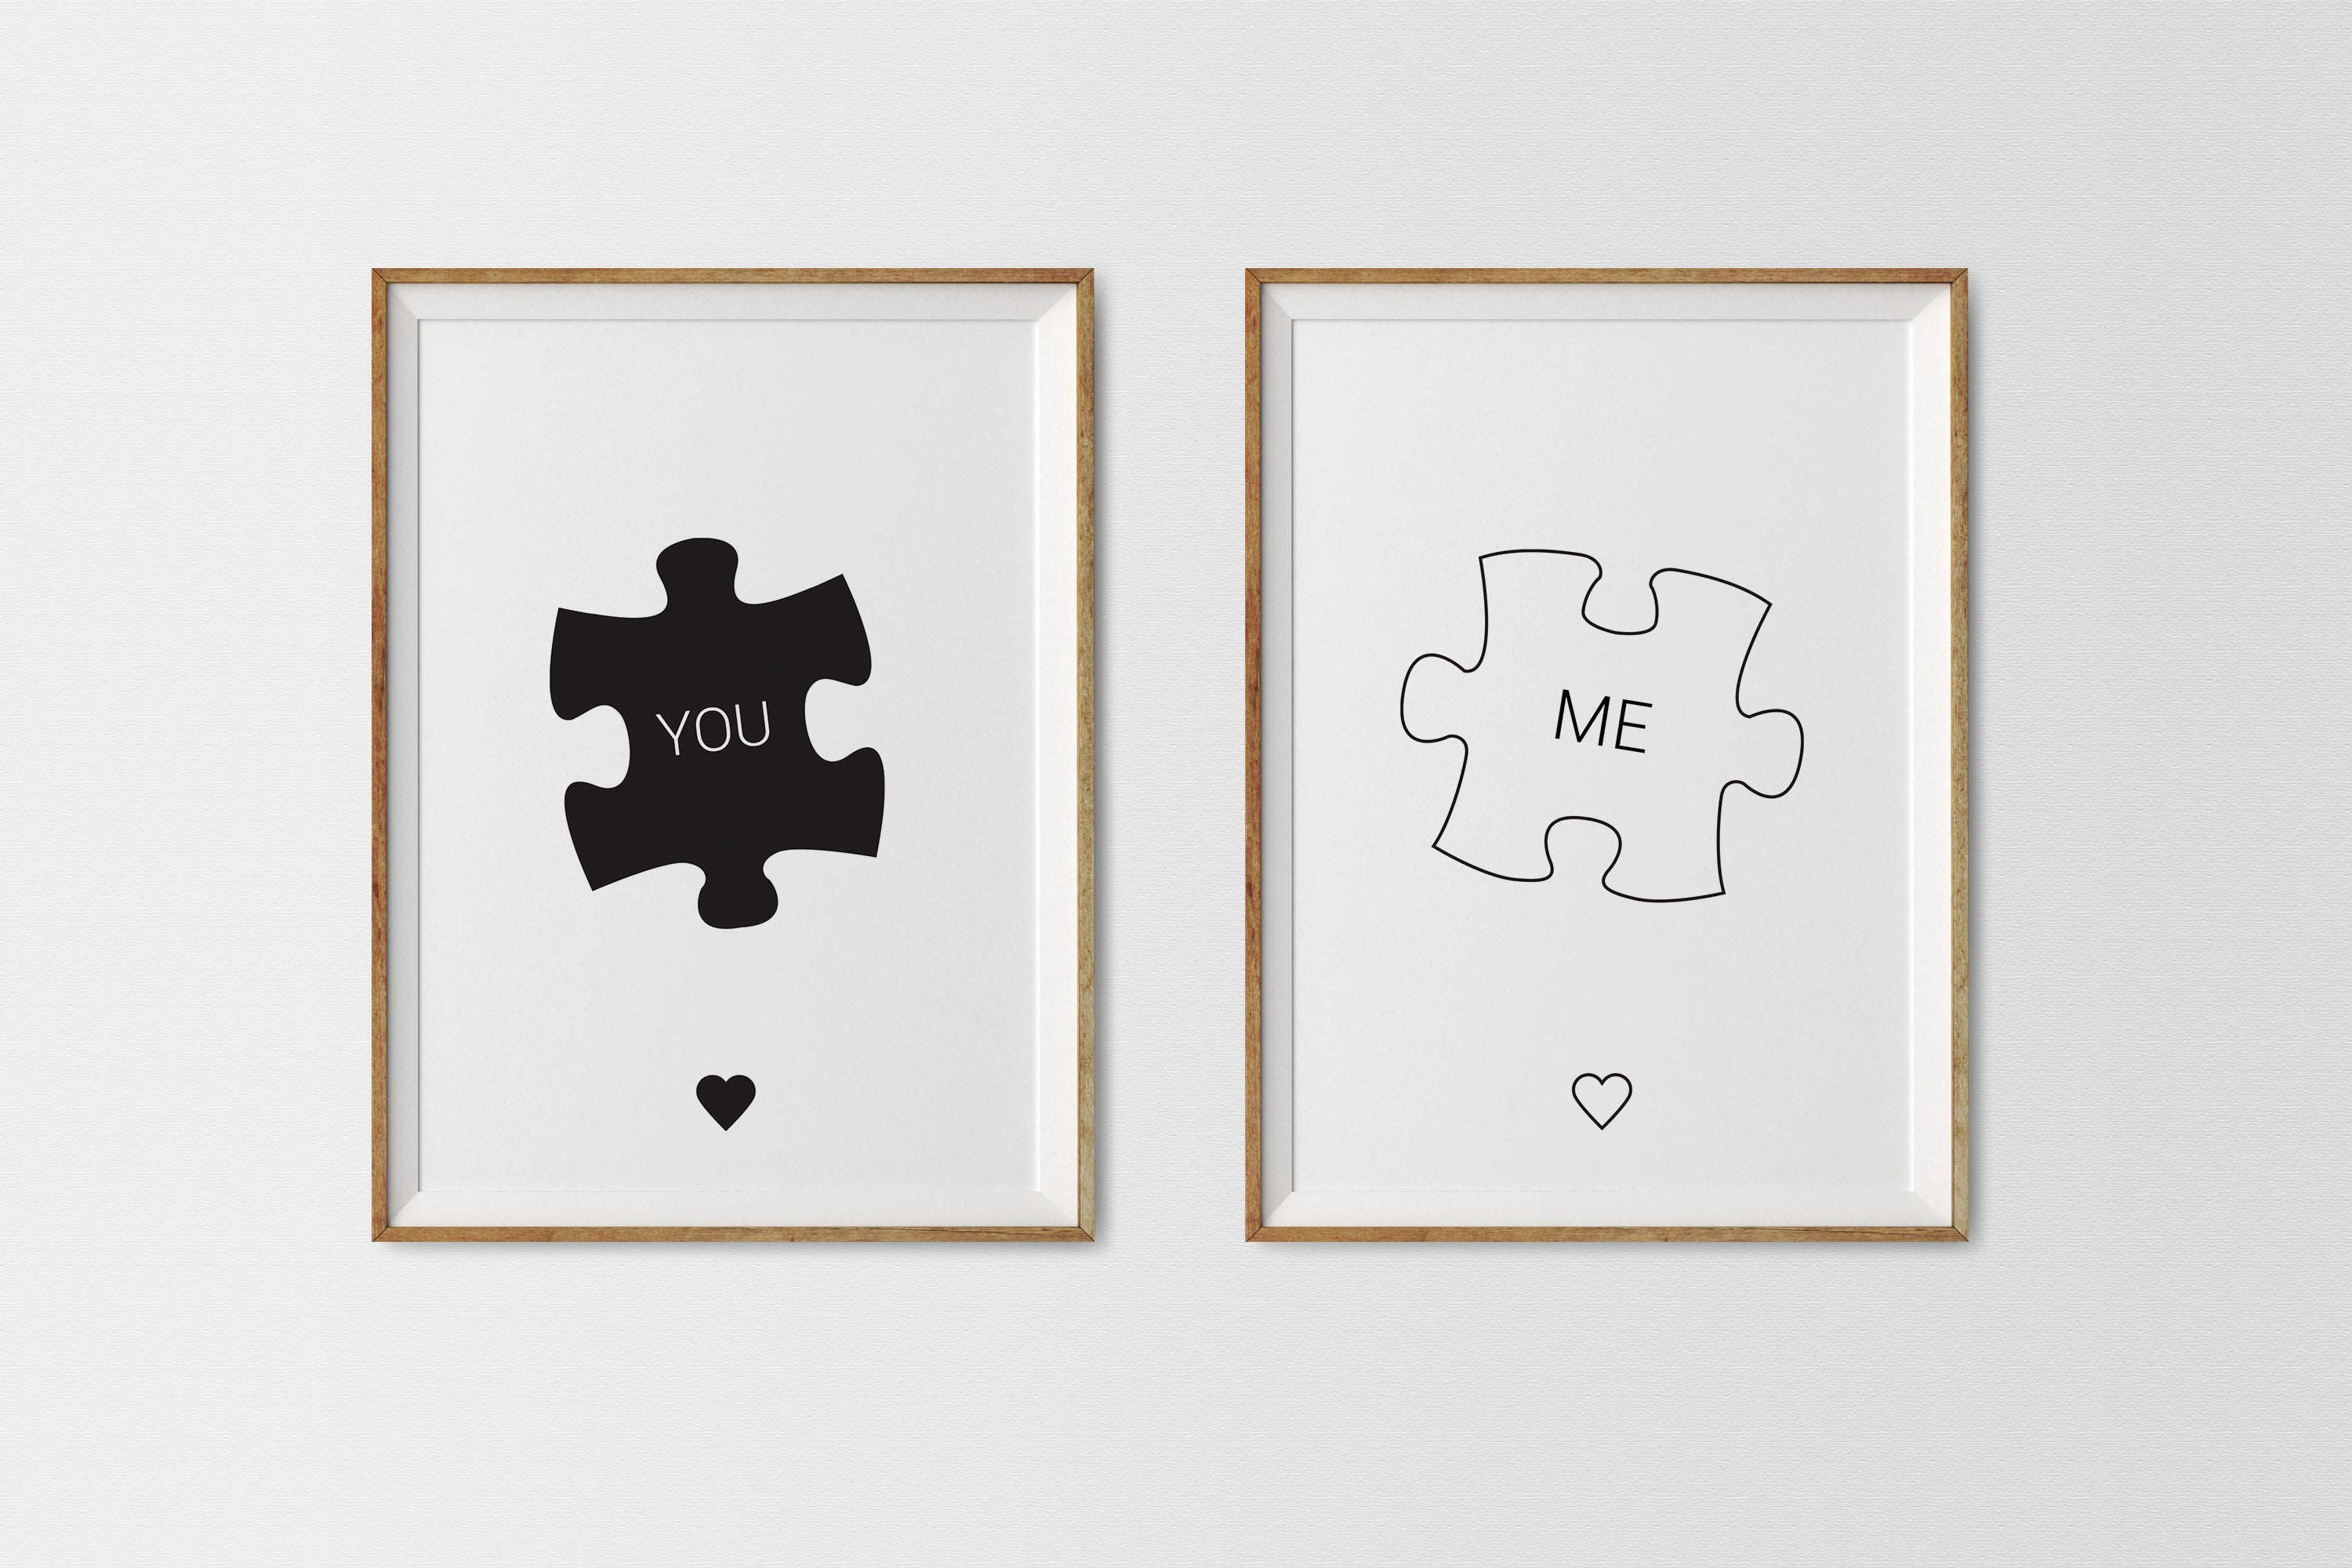 'You' and 'Me' wall art prints in frames hanging on a wall